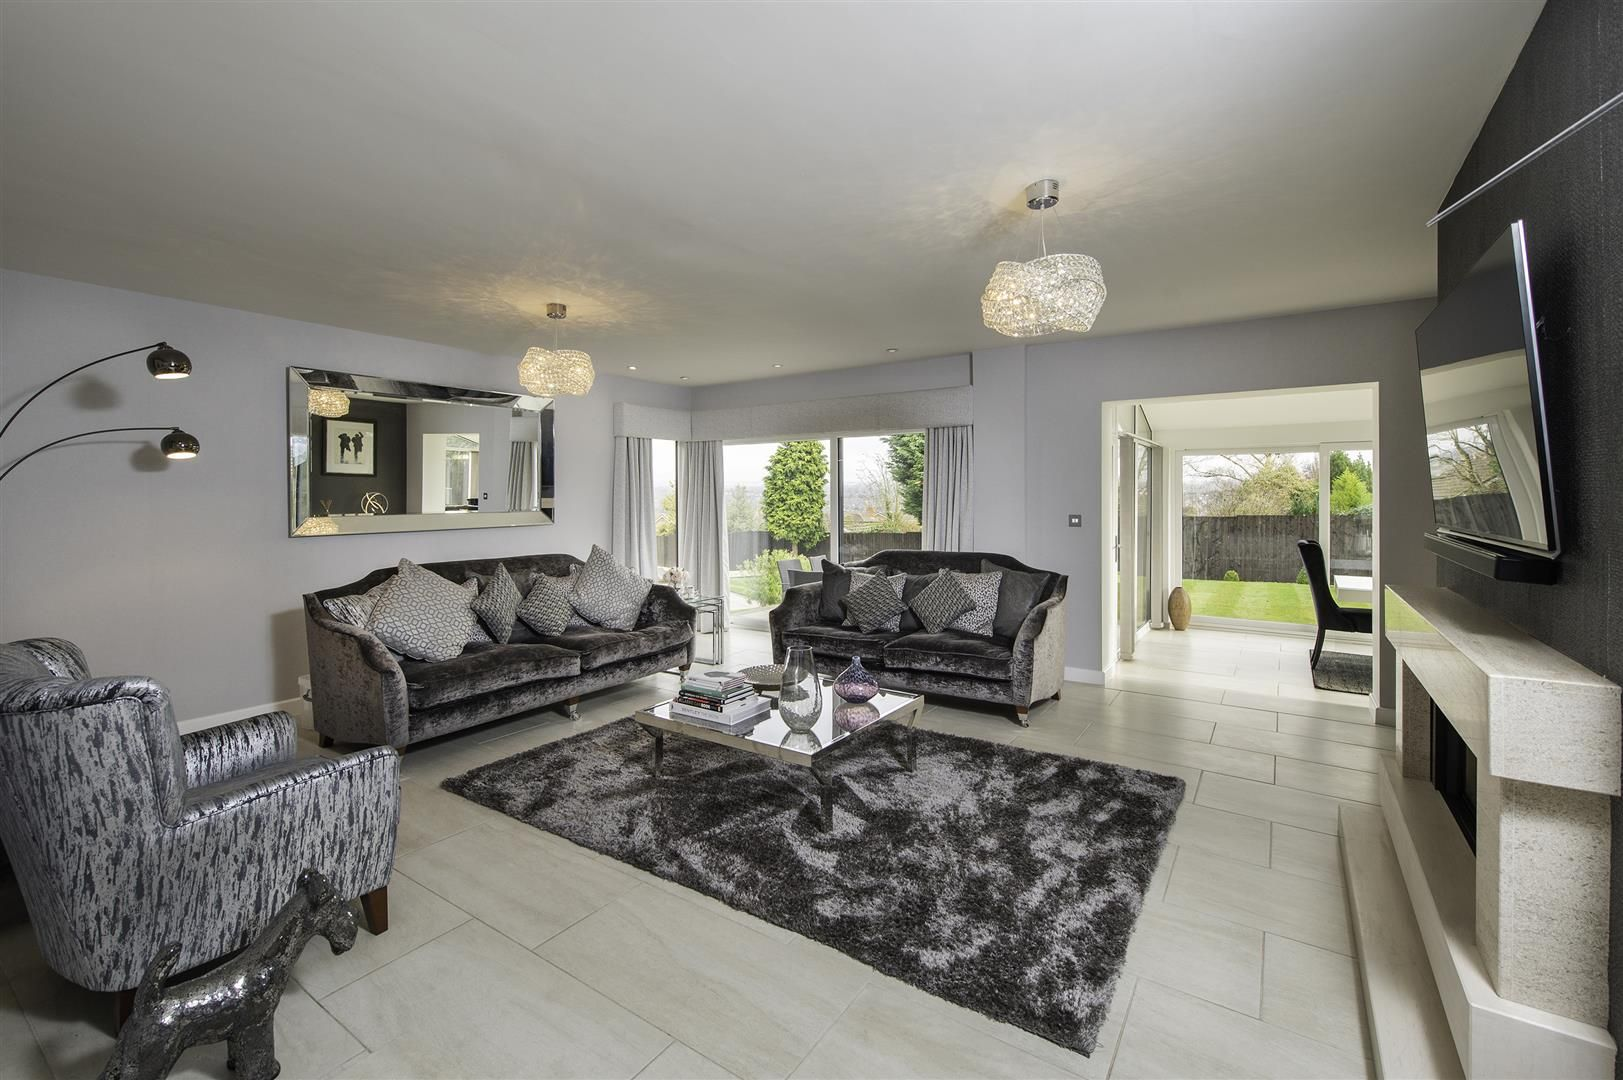 4 bed detached for sale in Stourton 5